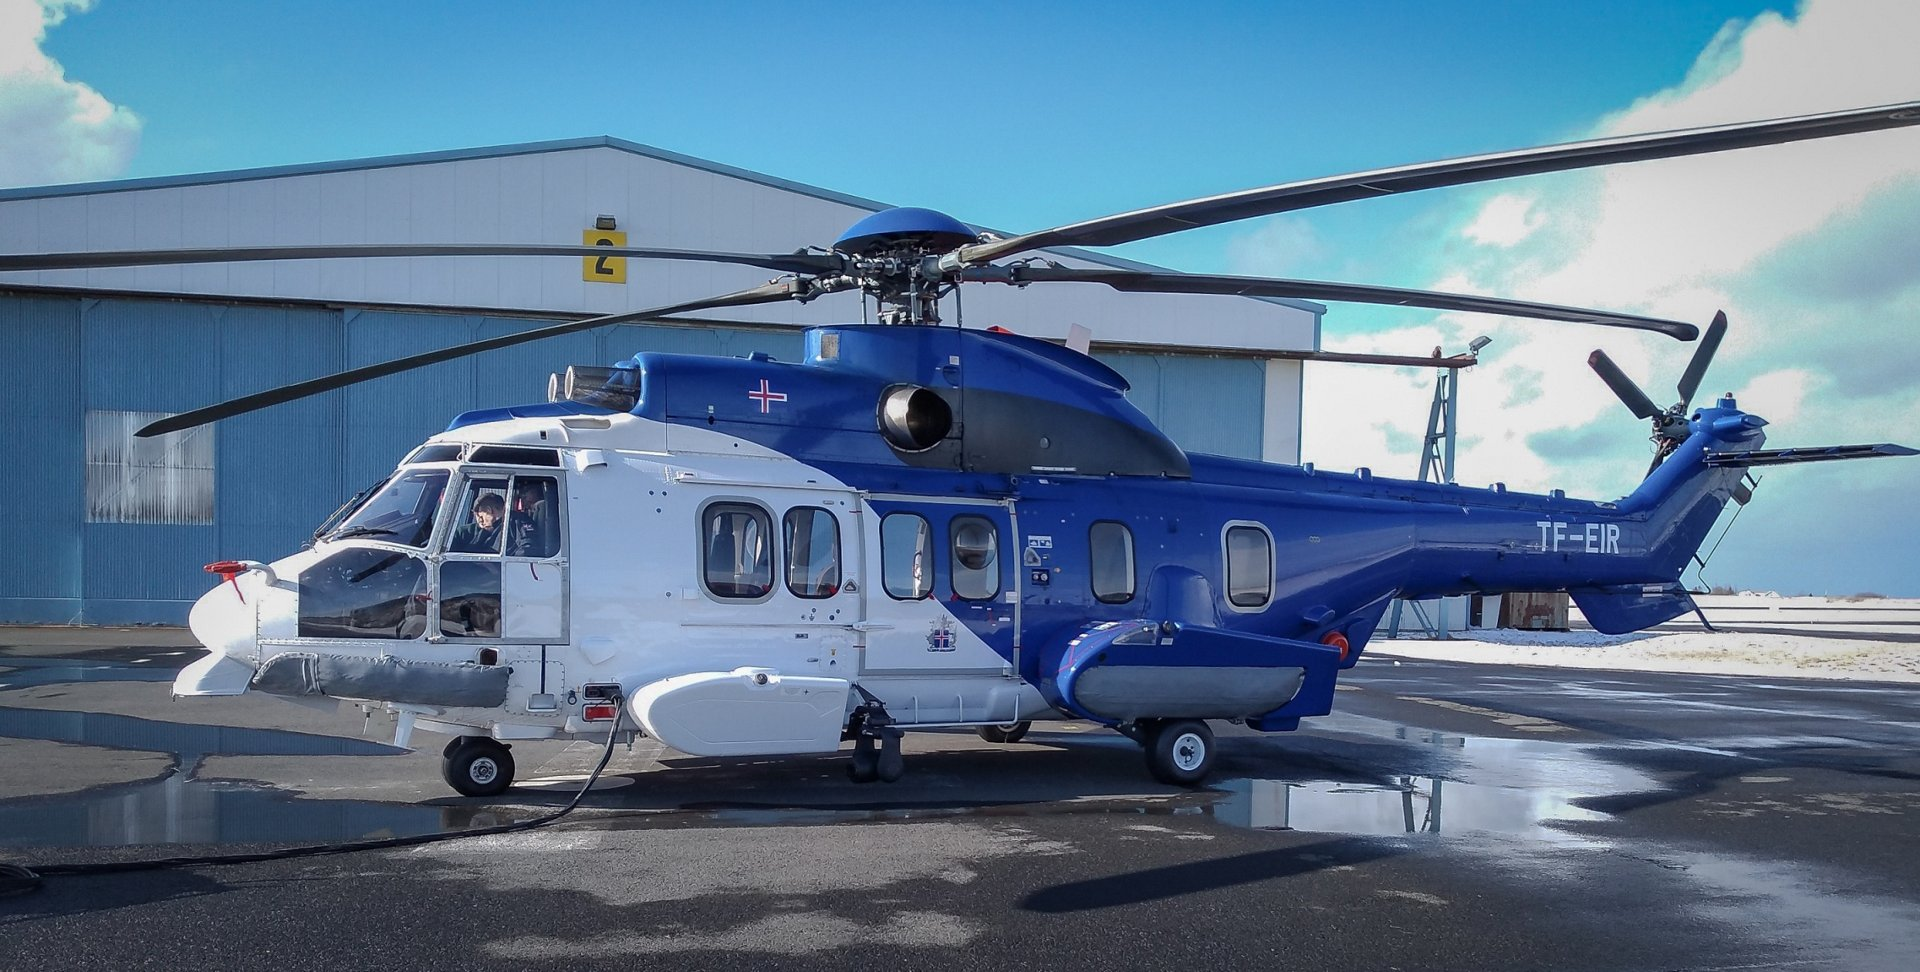 Icelandic Coast Guard upgrades to Airbus H225 rescue helicopters